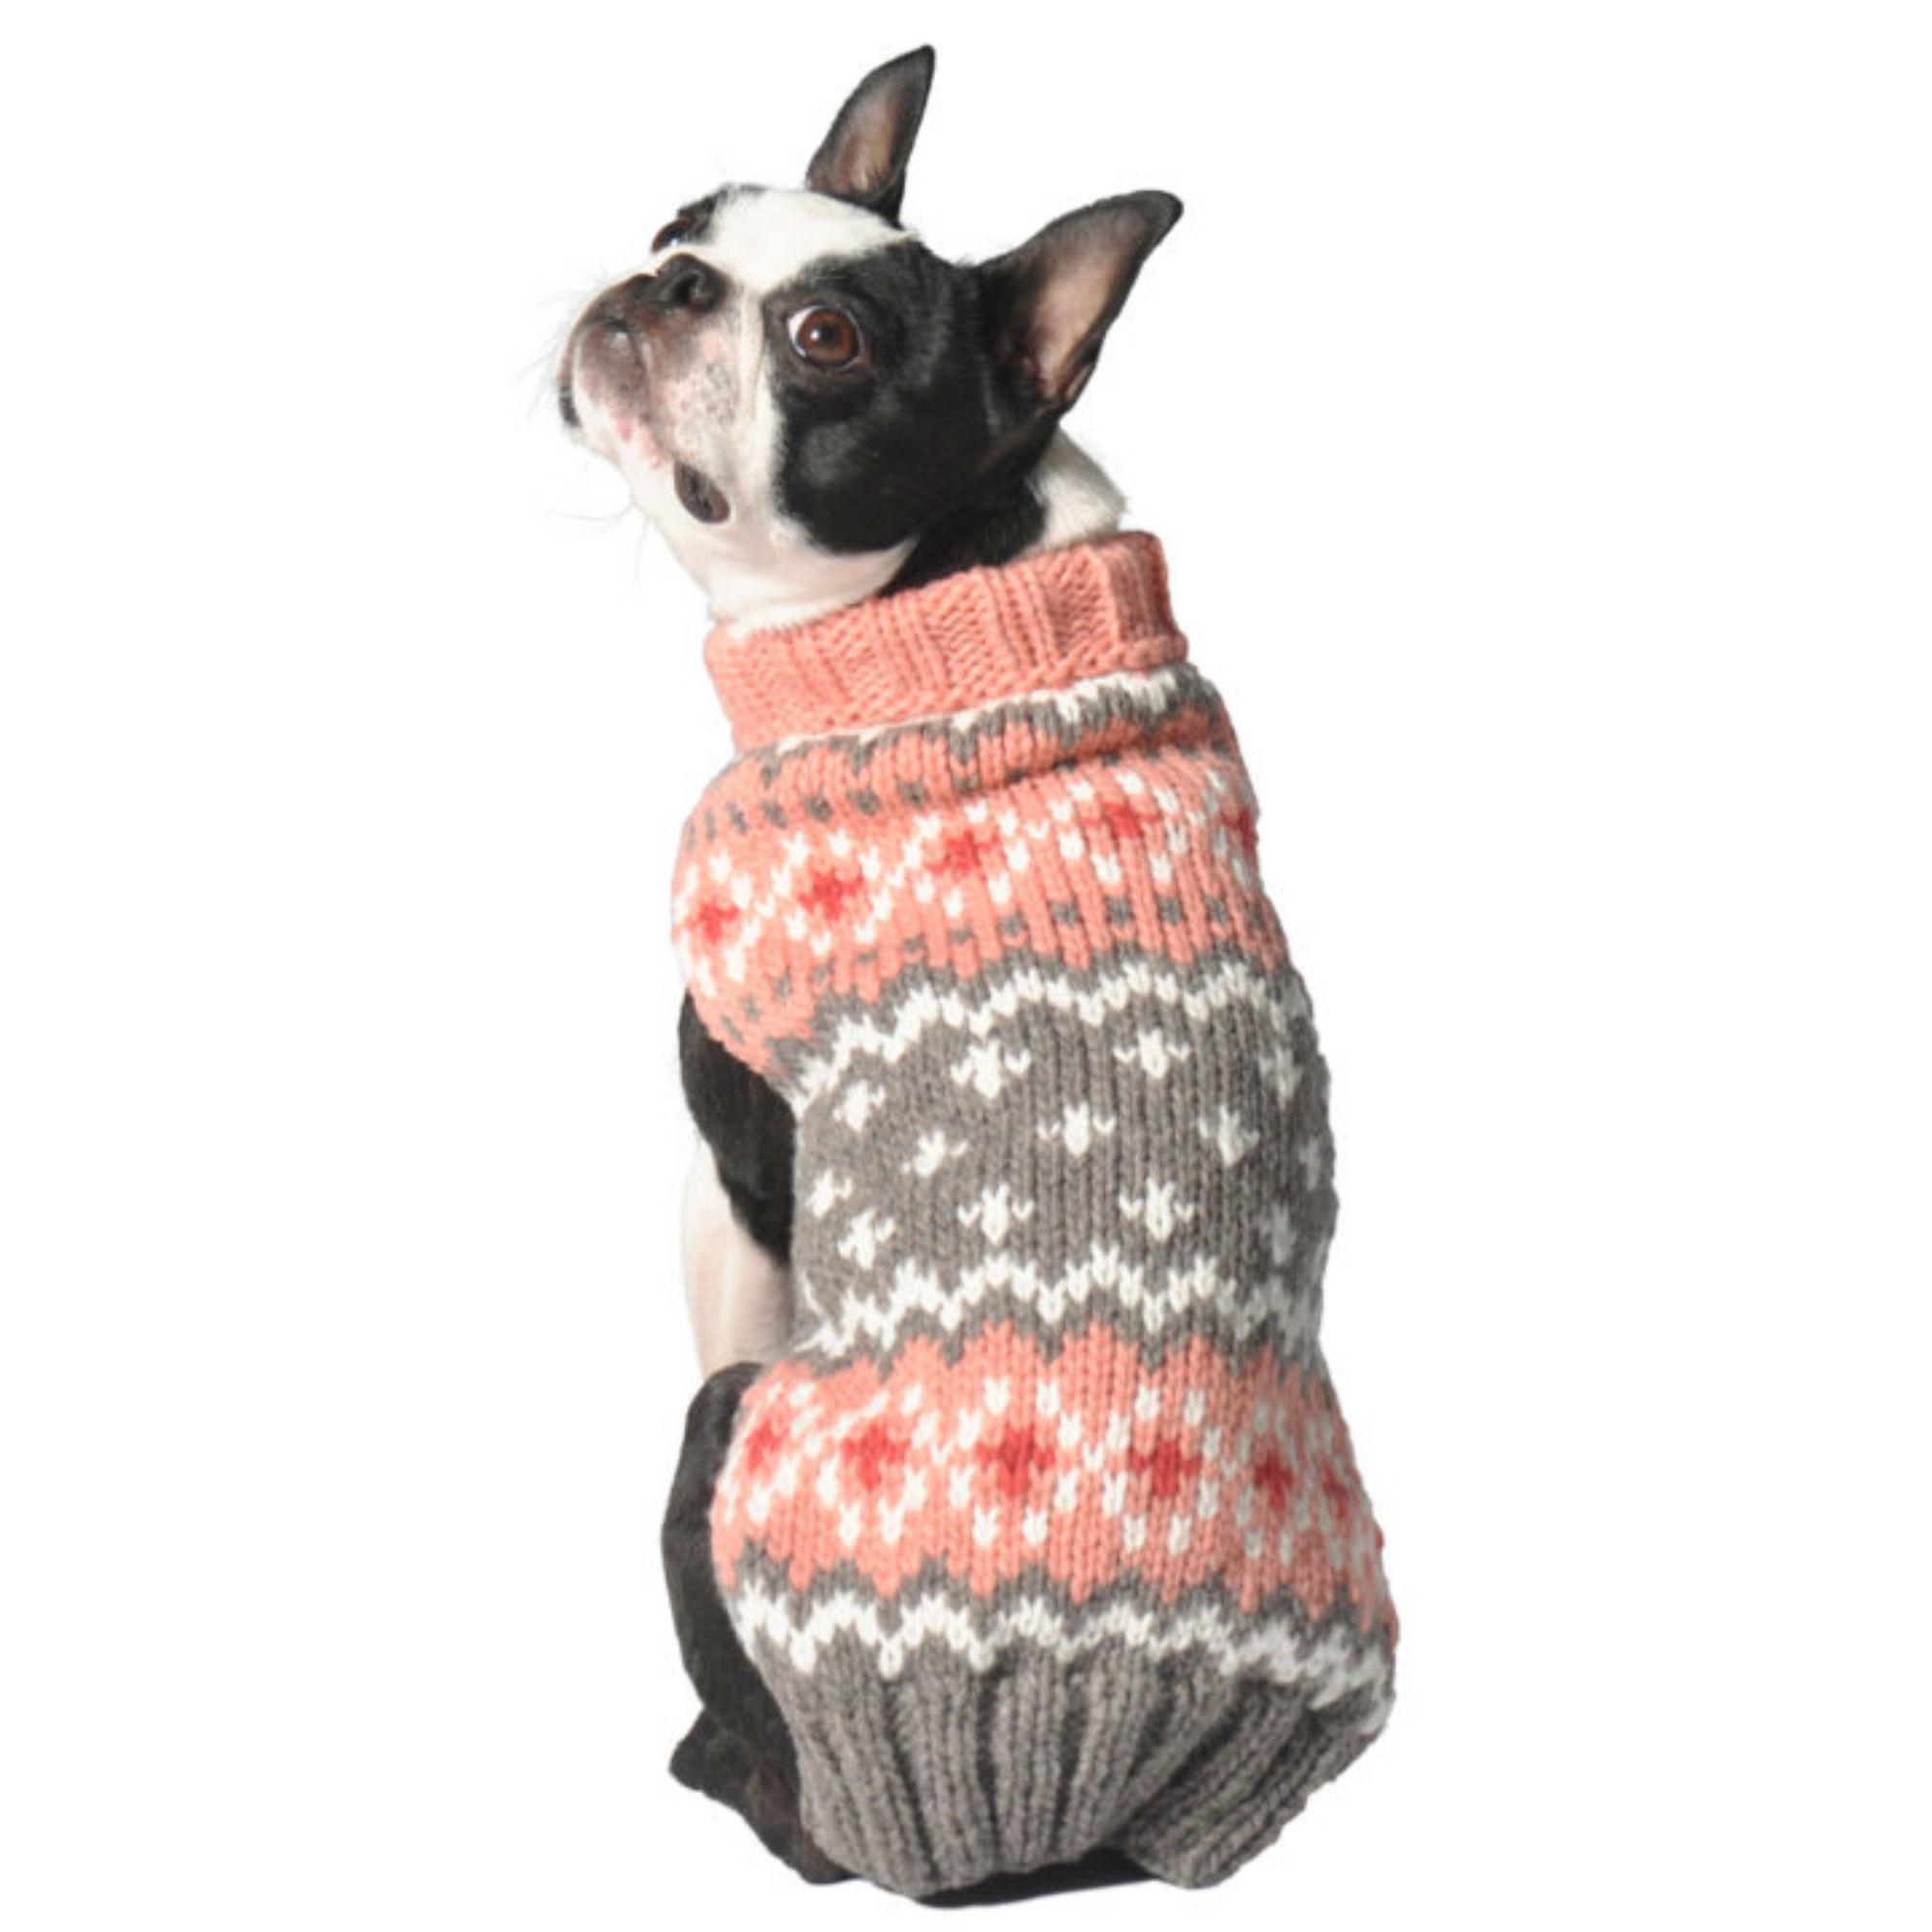 Handmade Fairisle Wool Dog Sweater - Peach